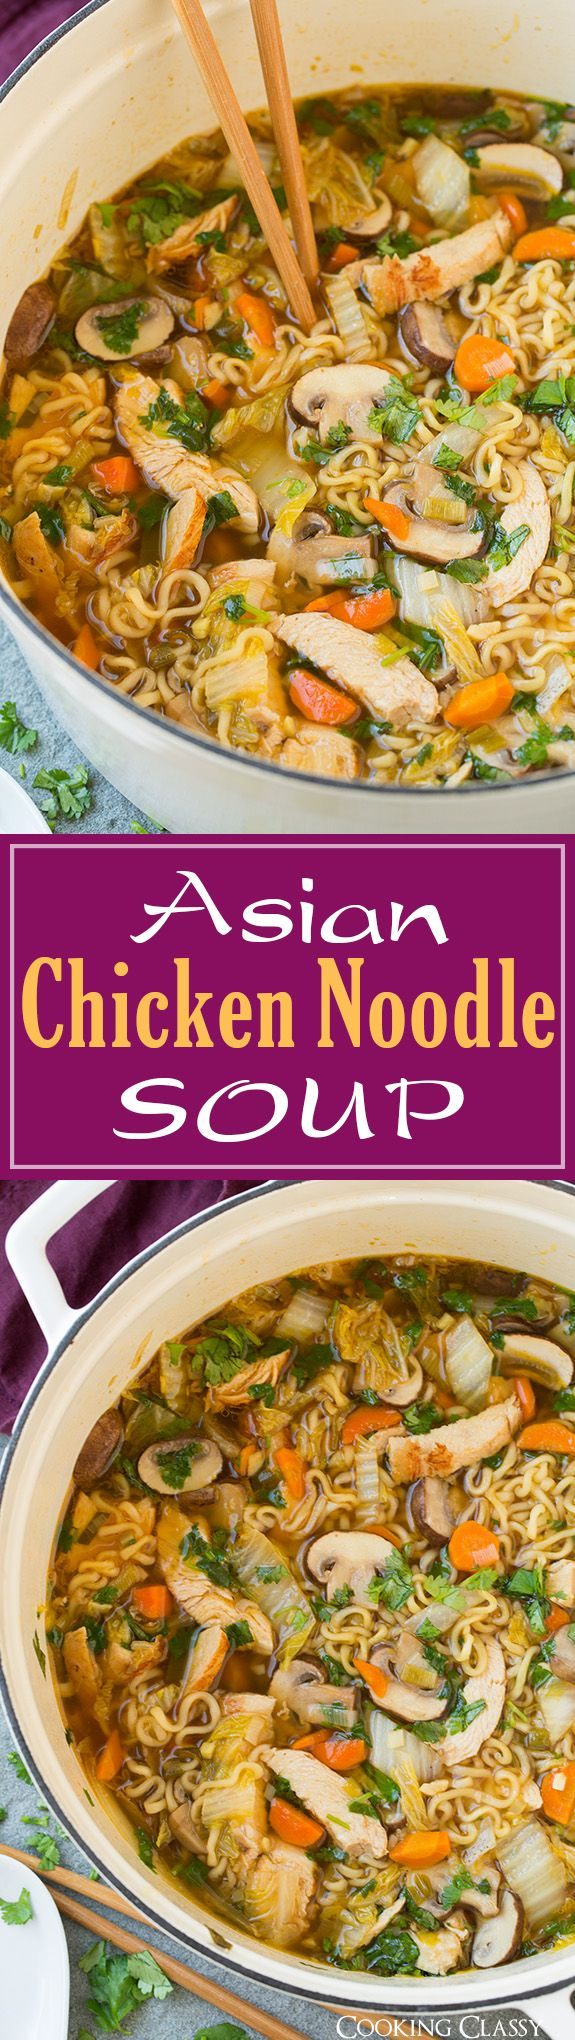 Asian Chicken Noodle Soup - this ramen spin on chicken noodle soup is SO…